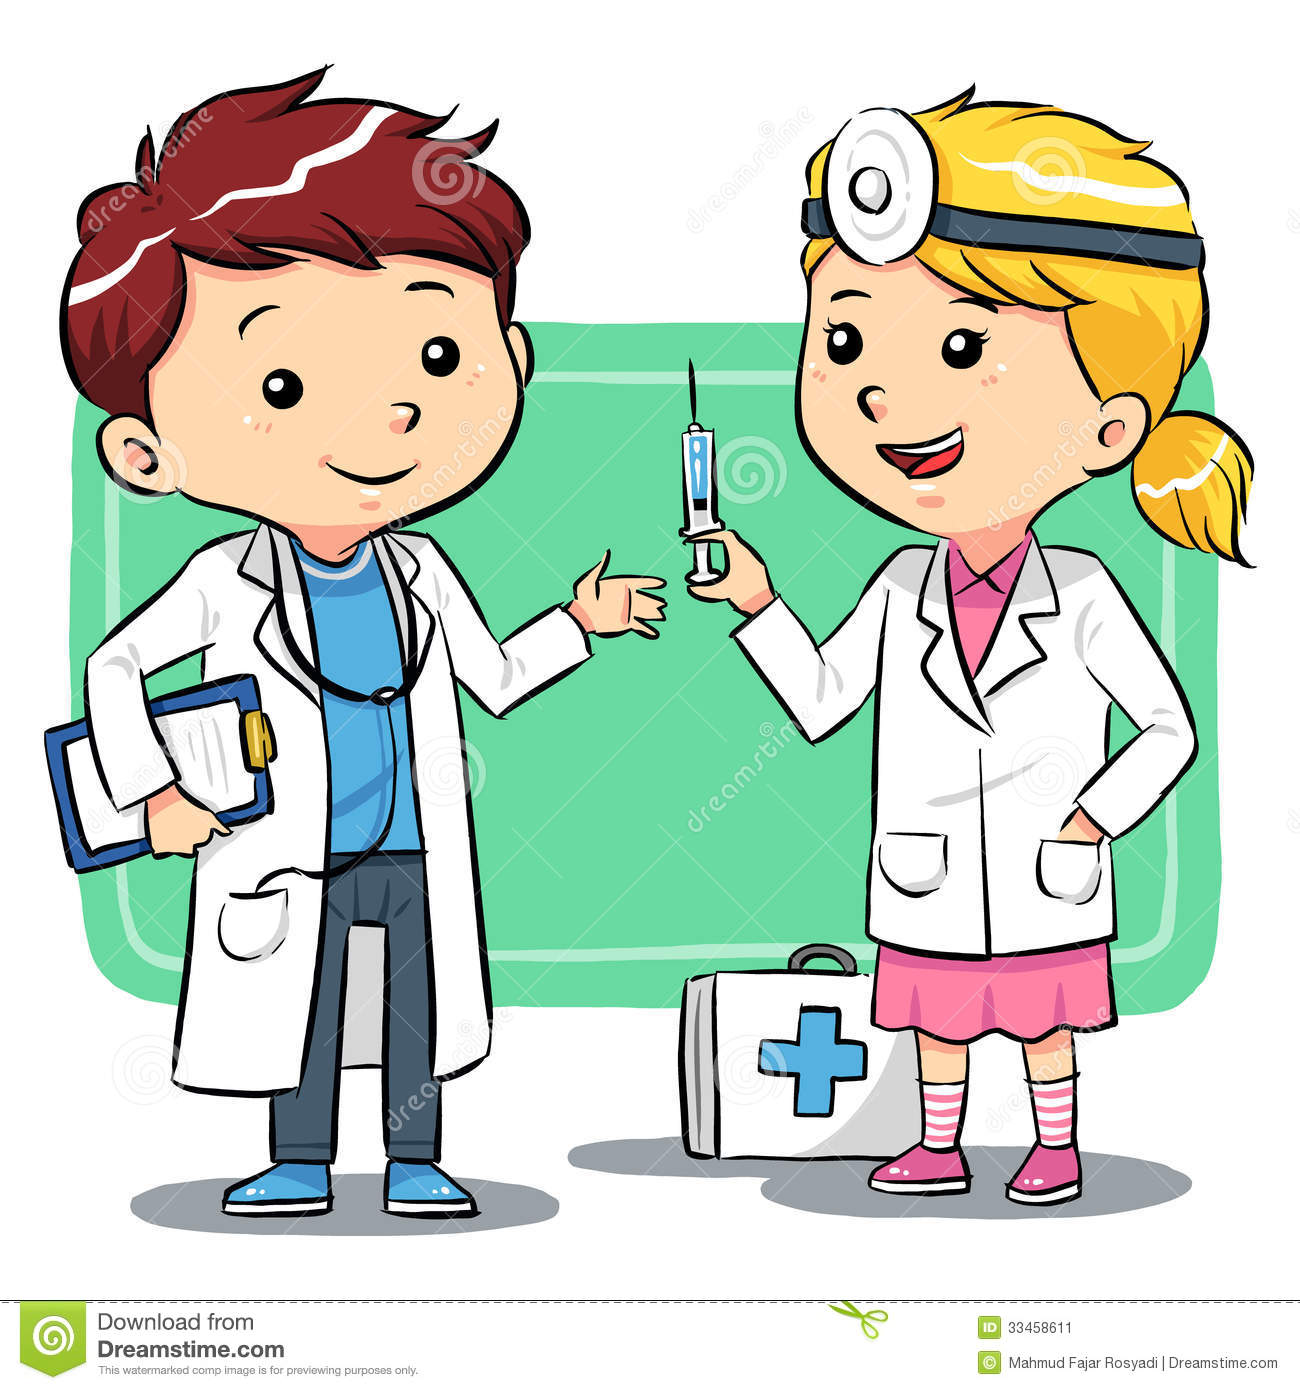 Boys clipart doctor. Picture for kids group